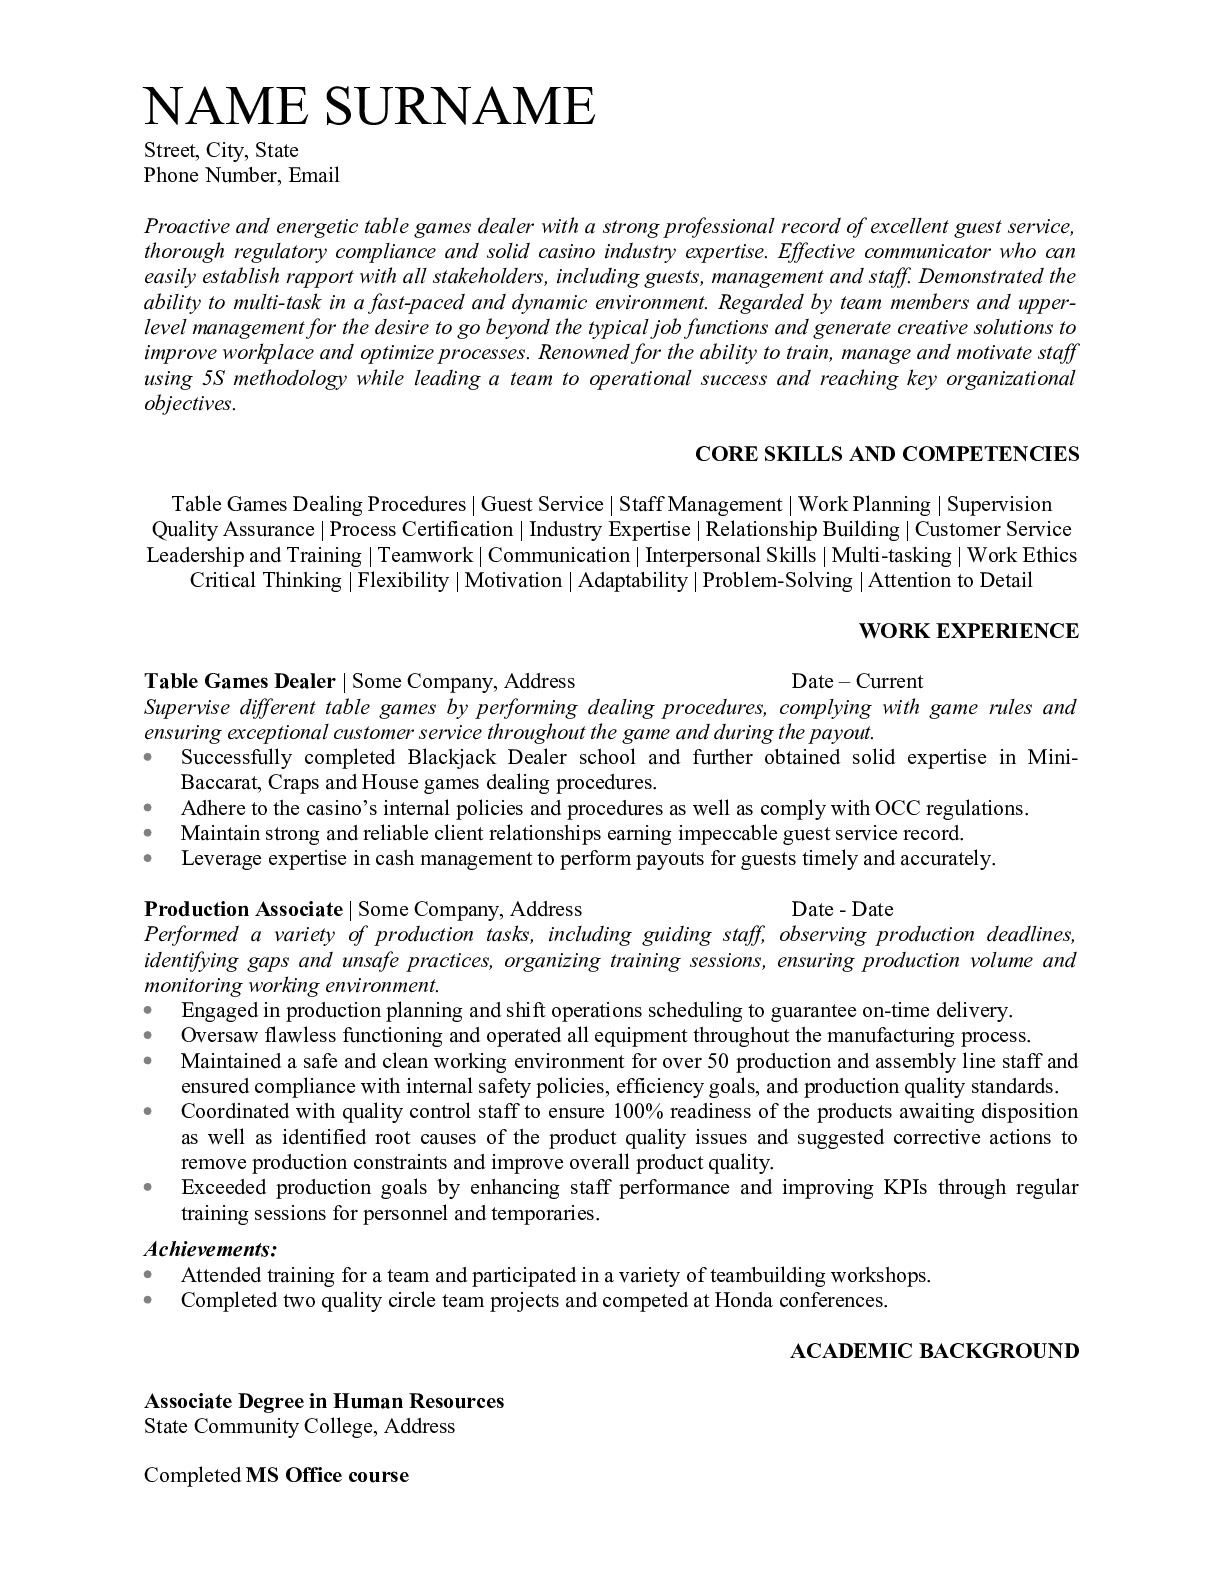 Resume for Table Game Dealer